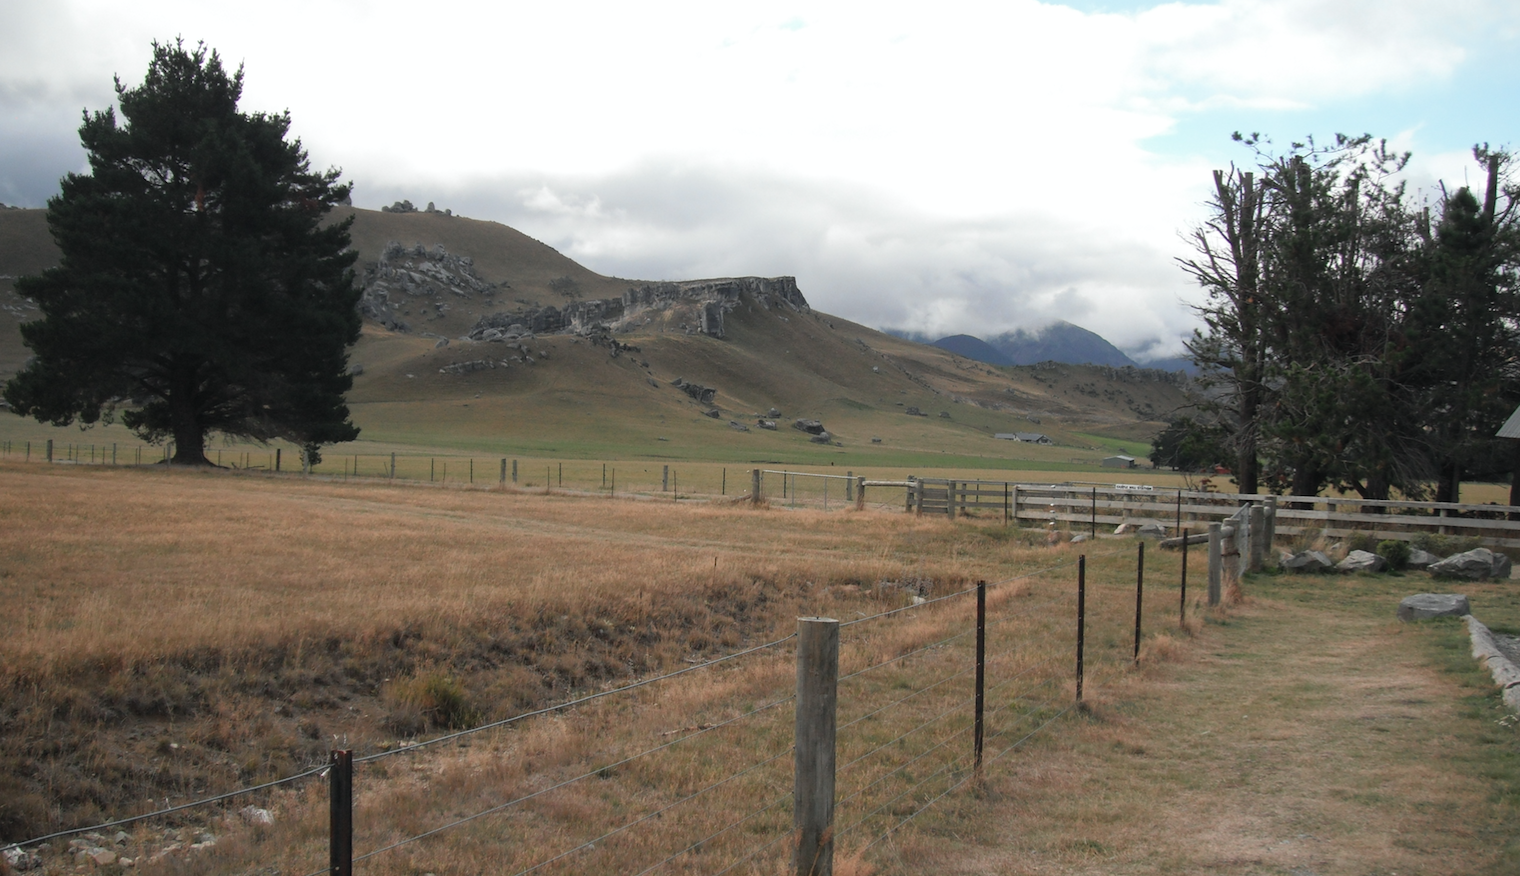 Castle hill nz from road